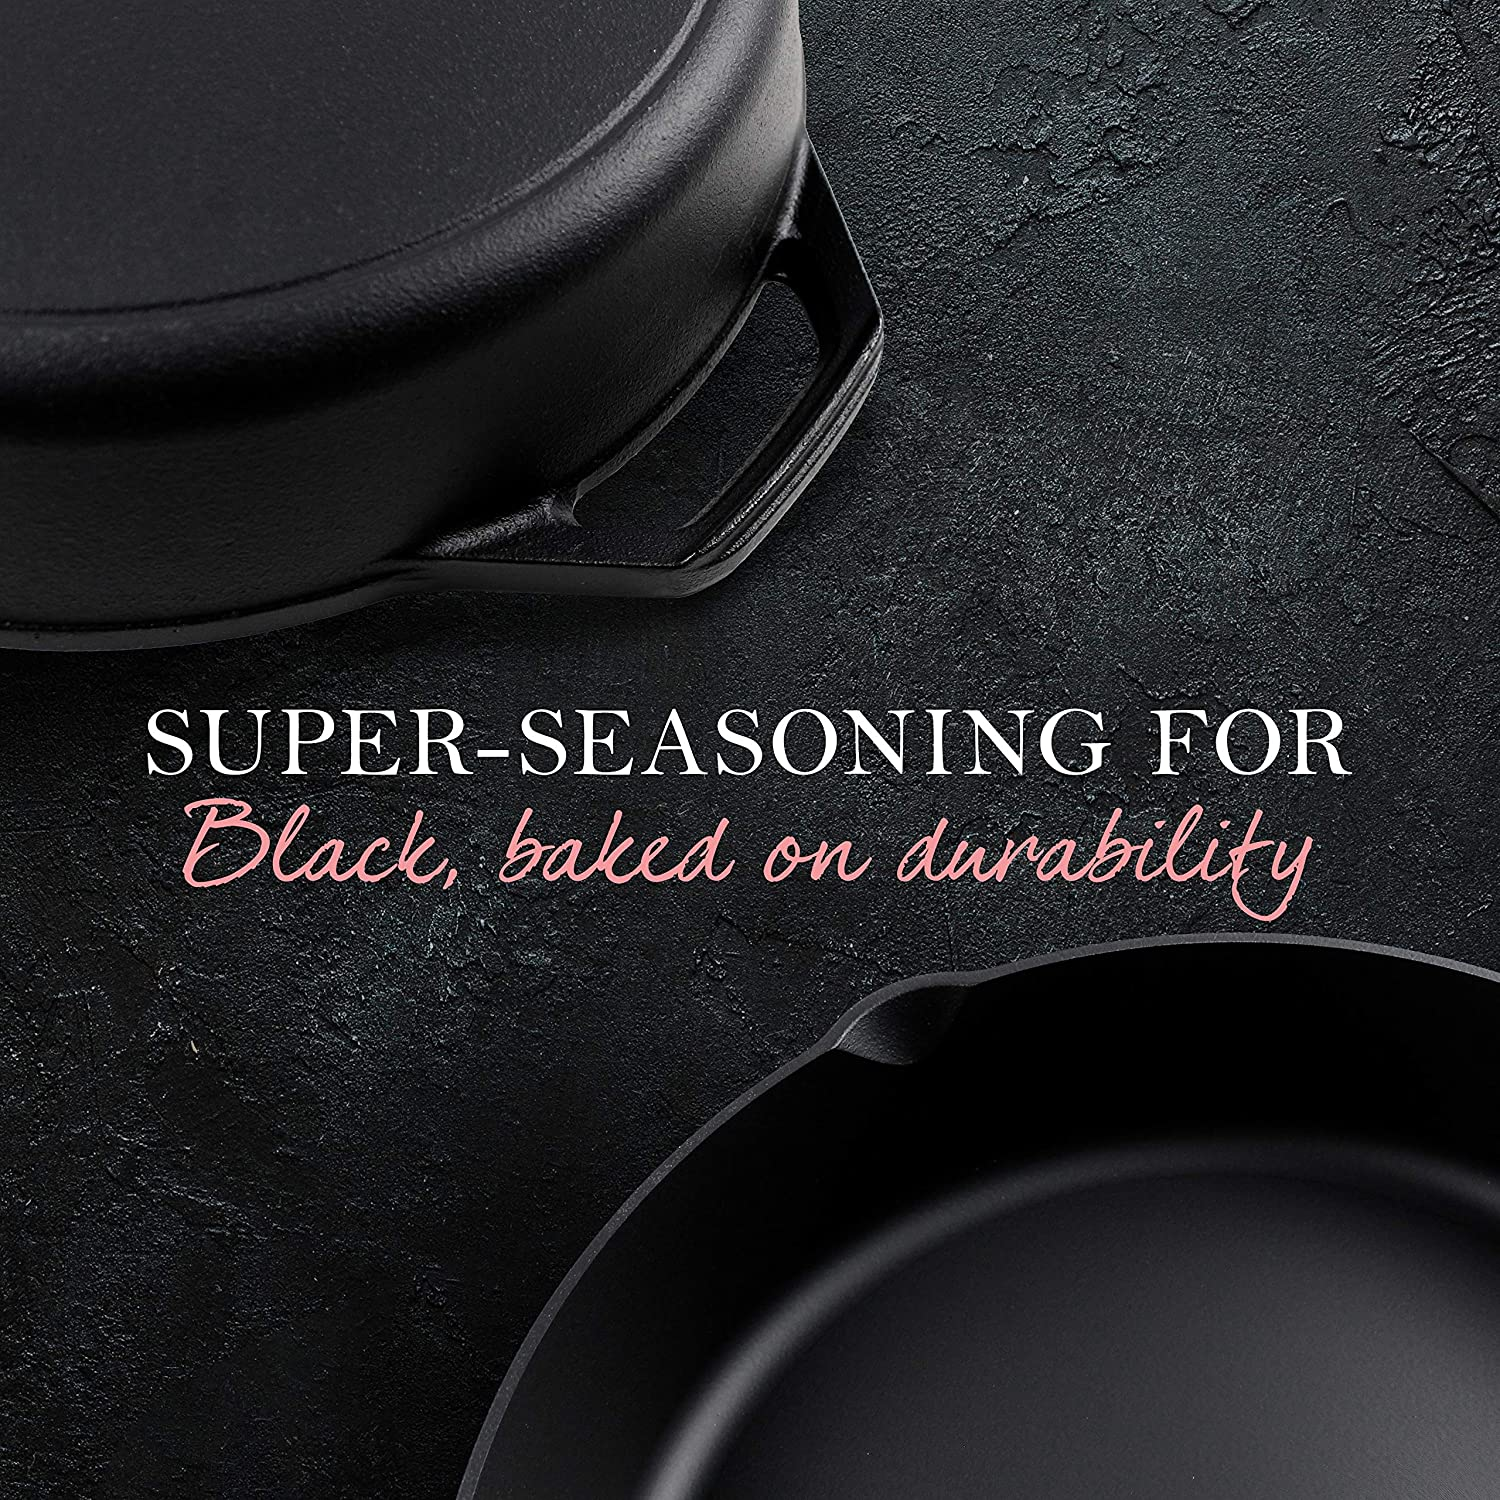 Oven Safe. Fresh Australian Kitchen Super Pre-Seasoned Polished 12 Inch 30cm Camping BBQ Cast Iron Skillet Perfect Pan for Frying